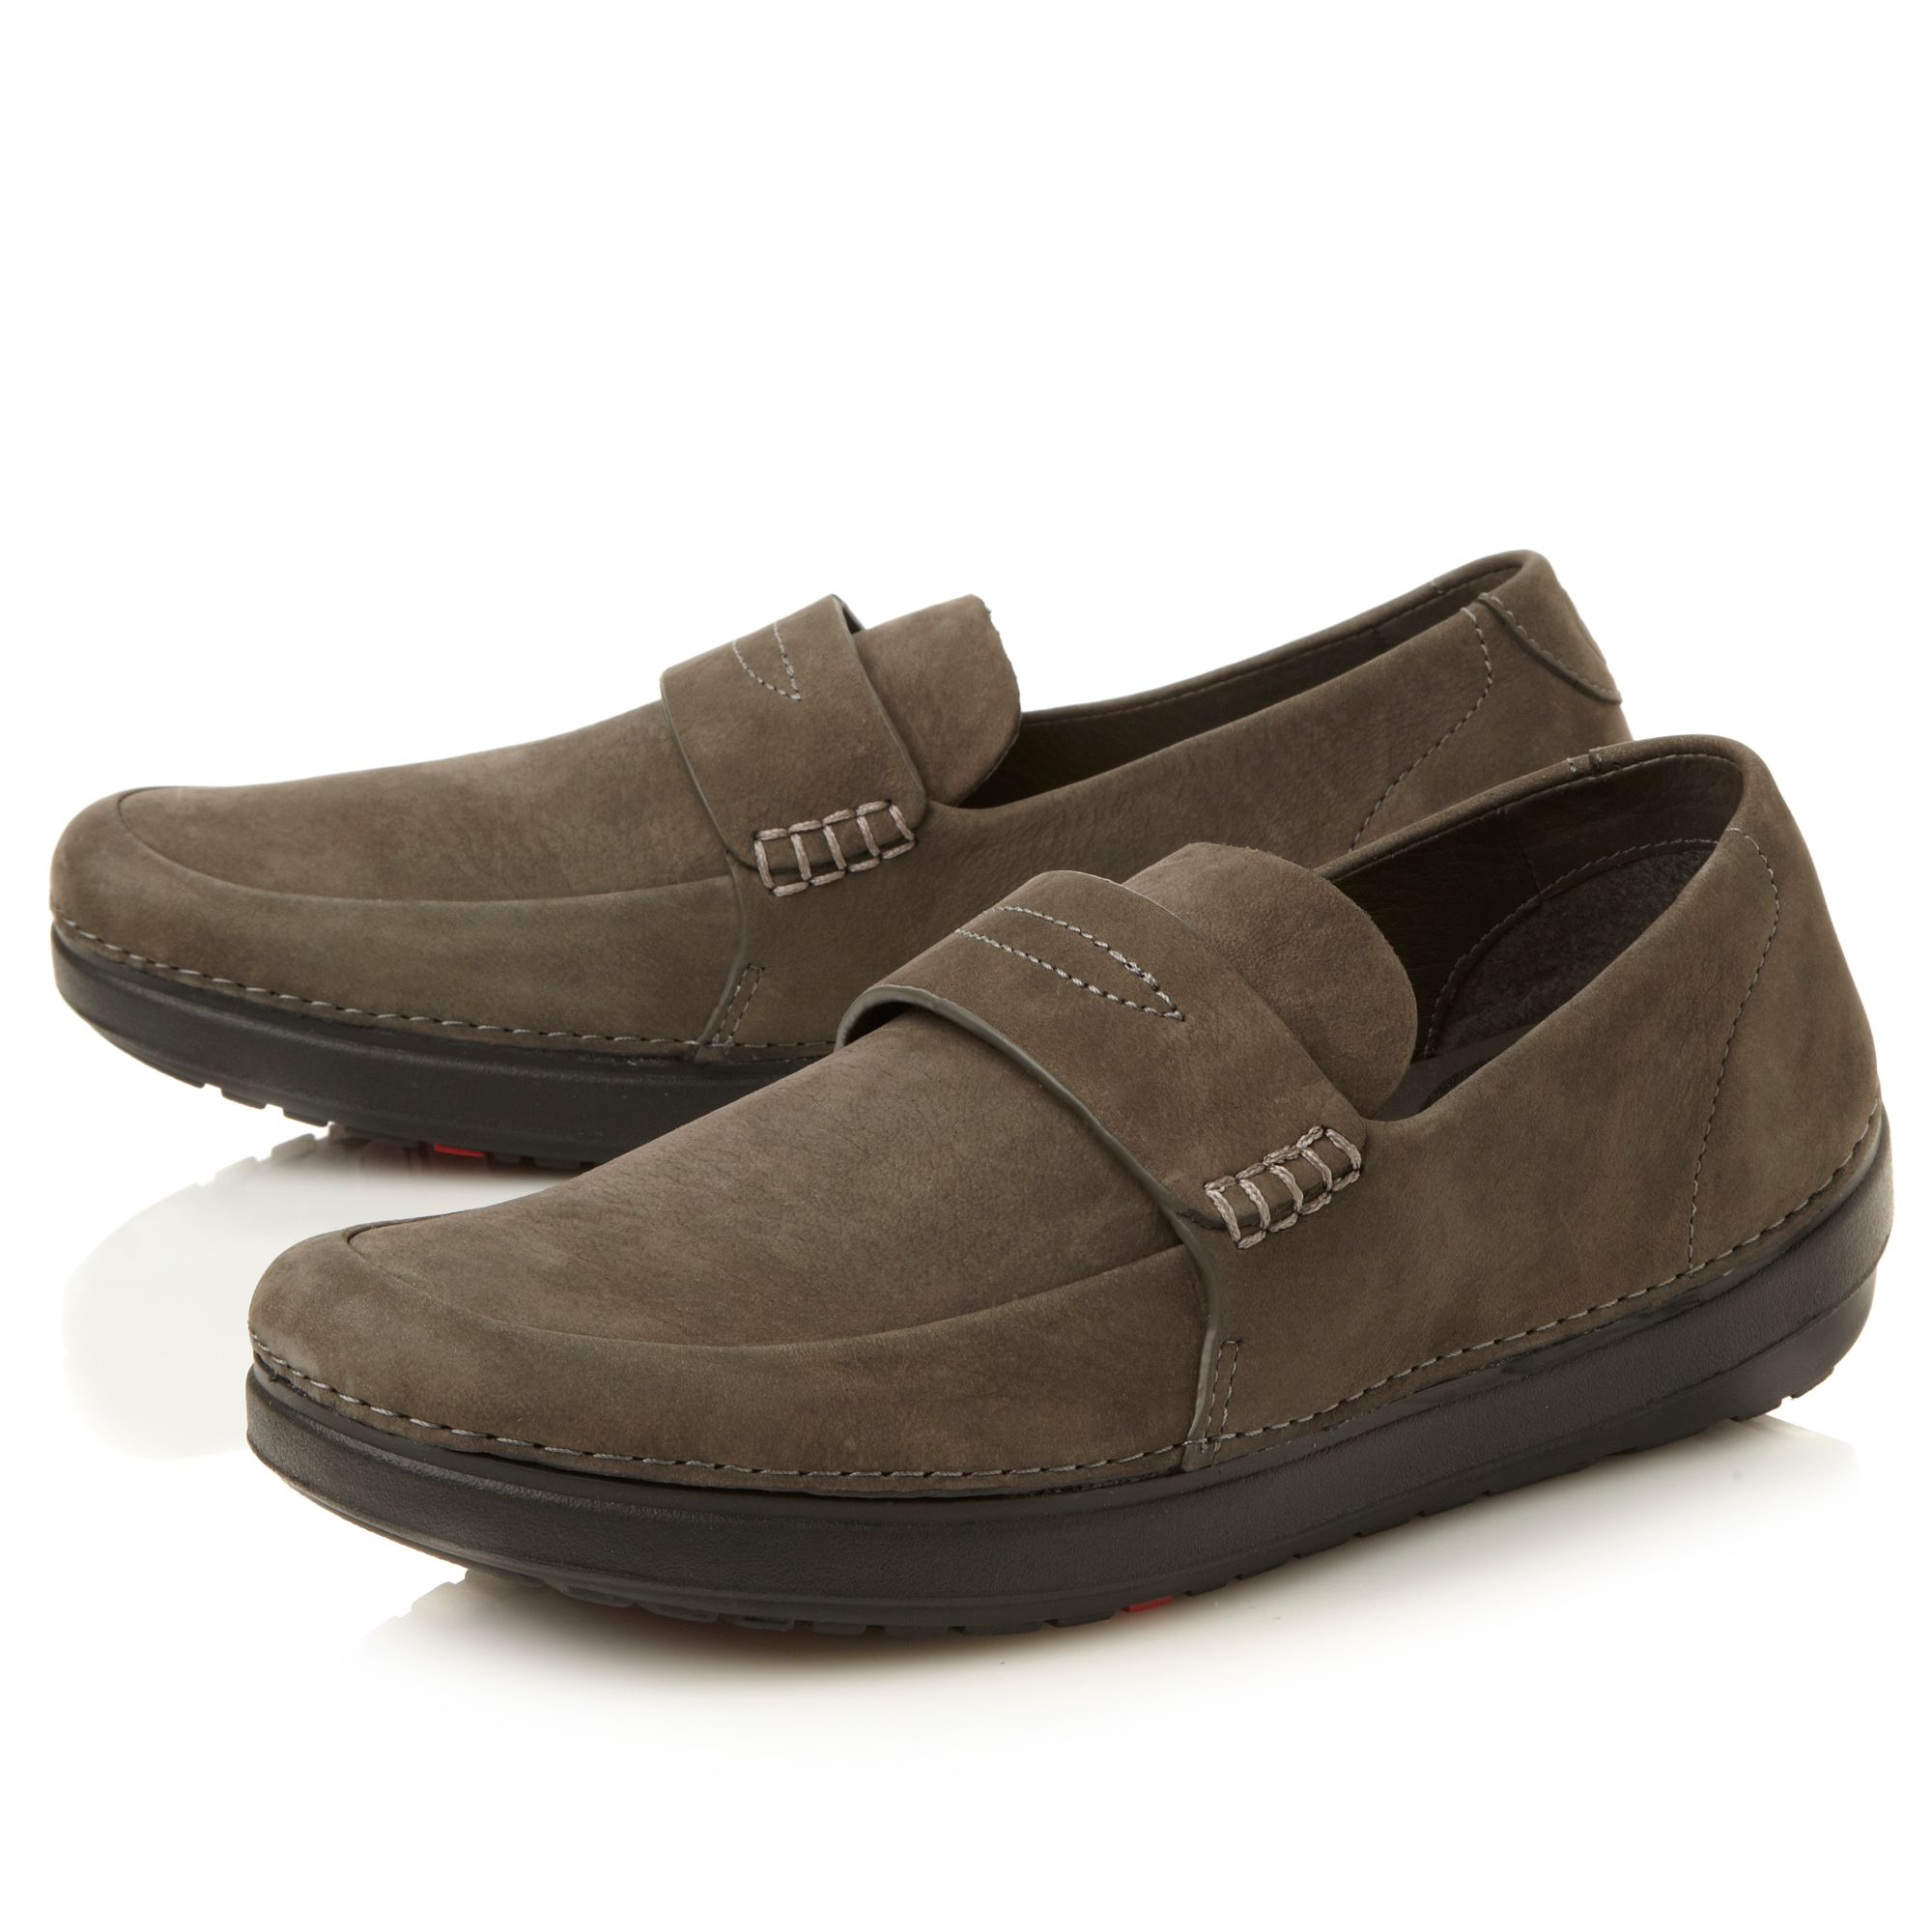 Men's Comfortable Loafers Crocs casual loafers are just that - comfortable and stylish slip-on shoes for men. Maybe your style is more along the lines of men's boat shoes.